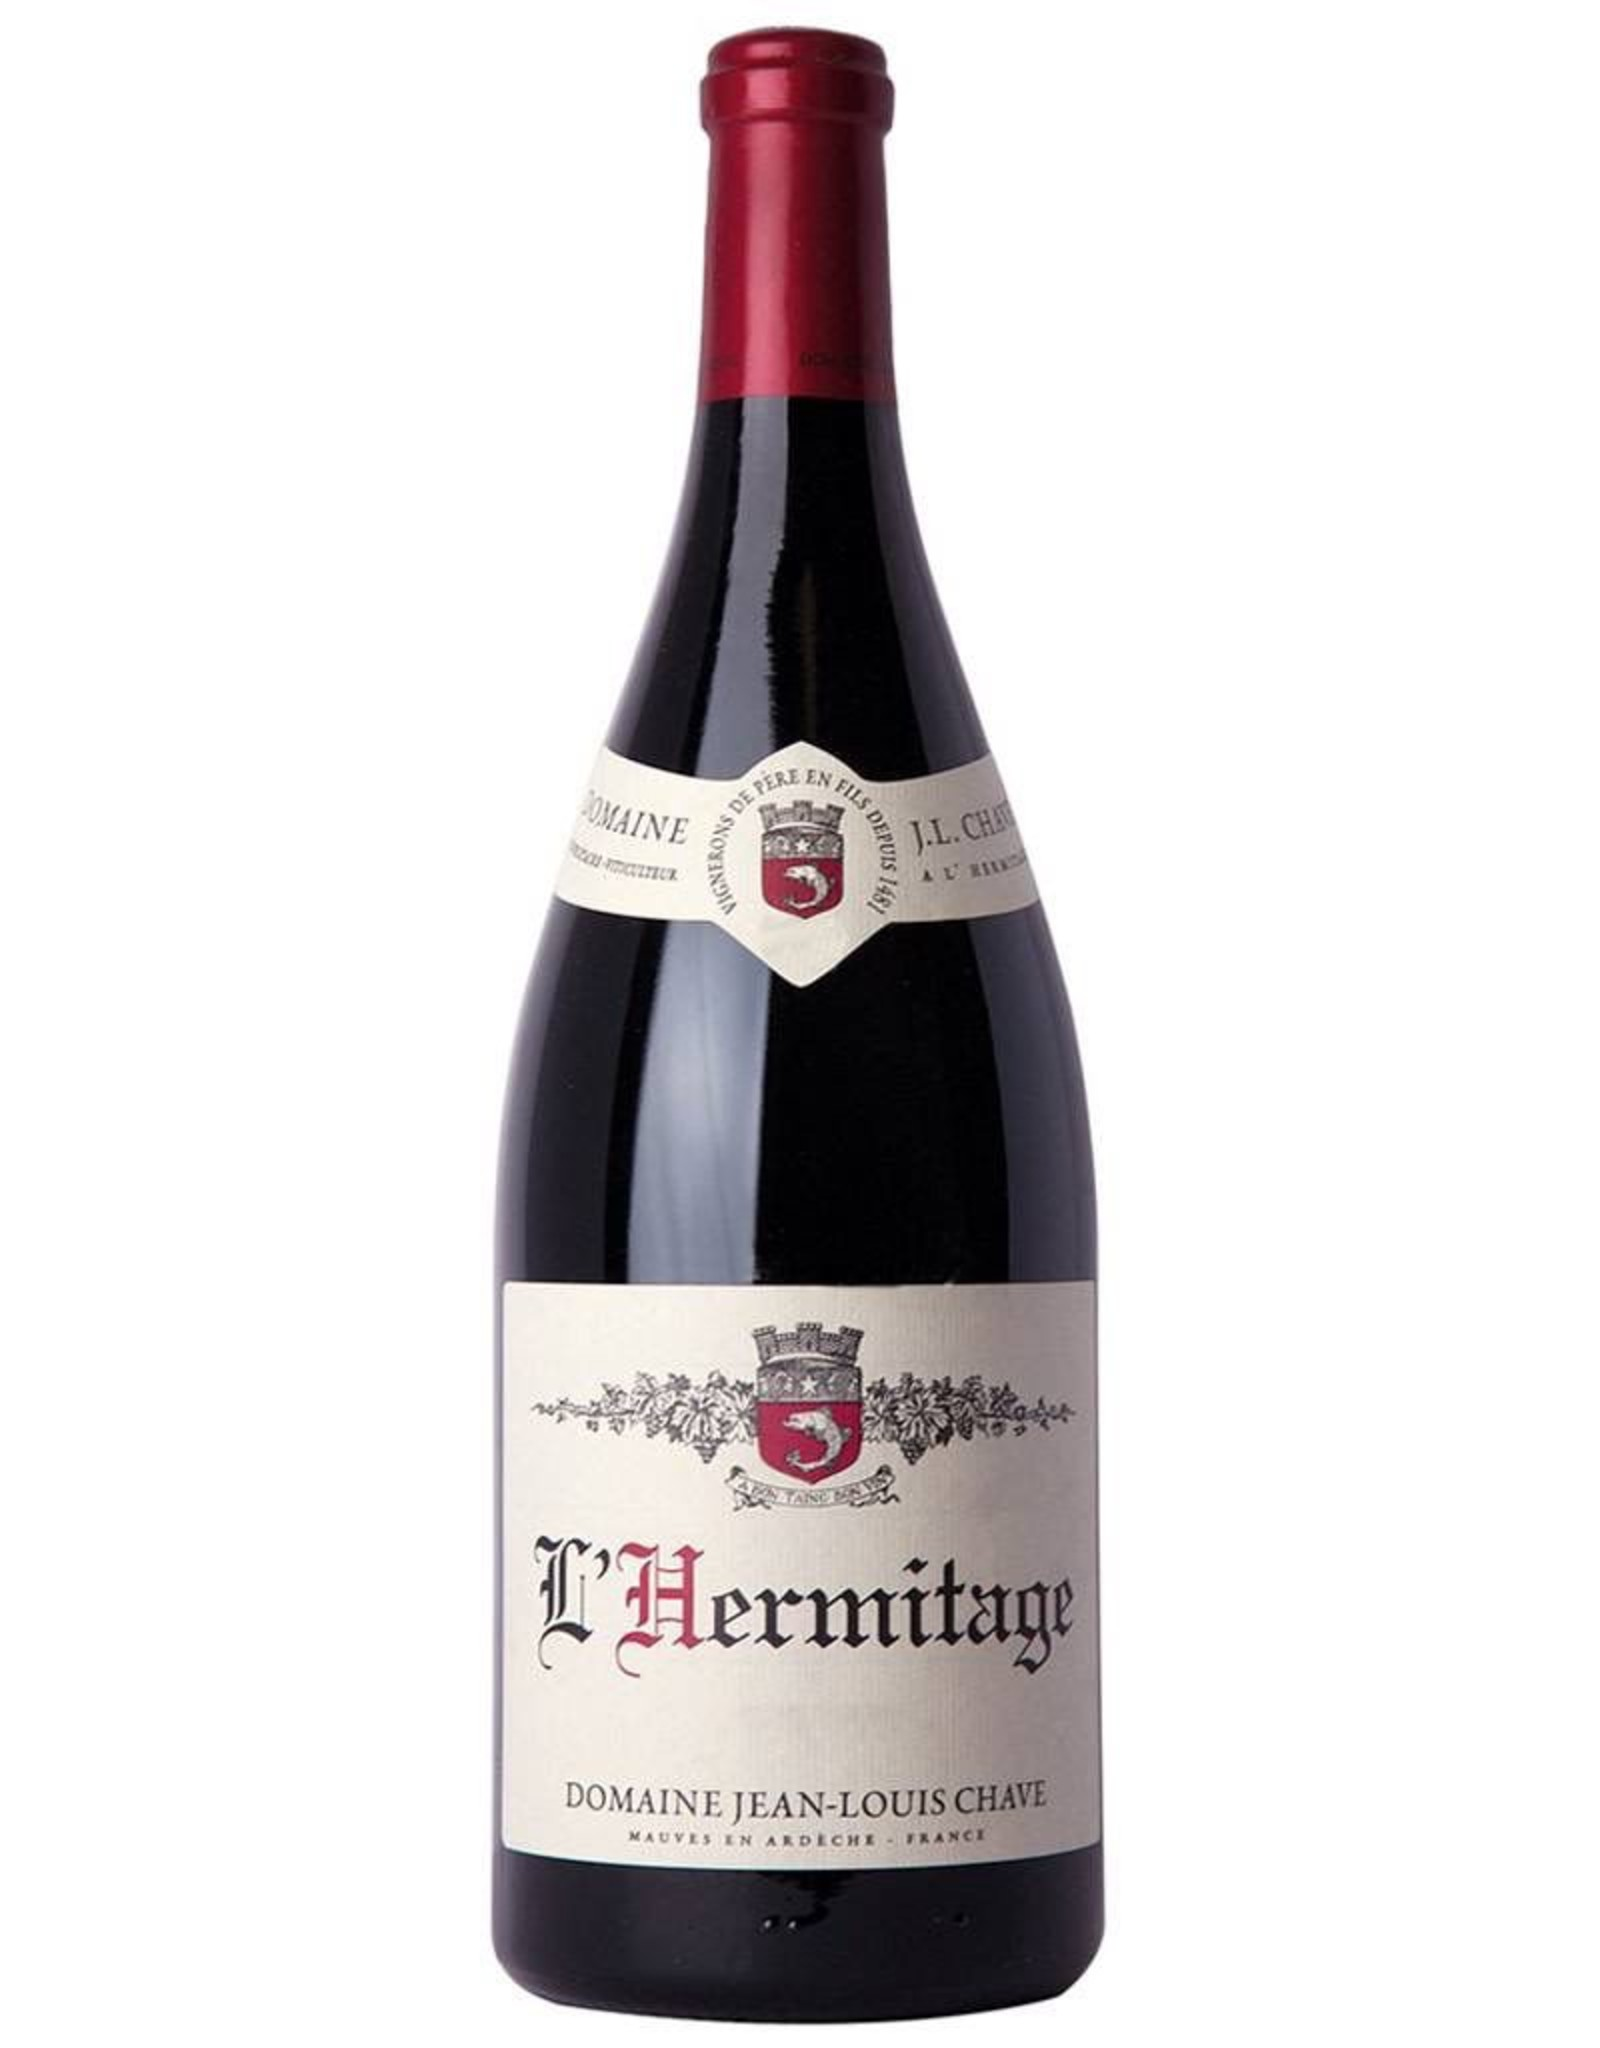 Red Wine 2015, Domaine Jean-Louis Chave L'Hermitage, Syrah/Shiraz Red Rhone Blend, Cotes du Rhone, Southern Rhone, France, 14.5% Alc, CT94.5 JD100 RP100